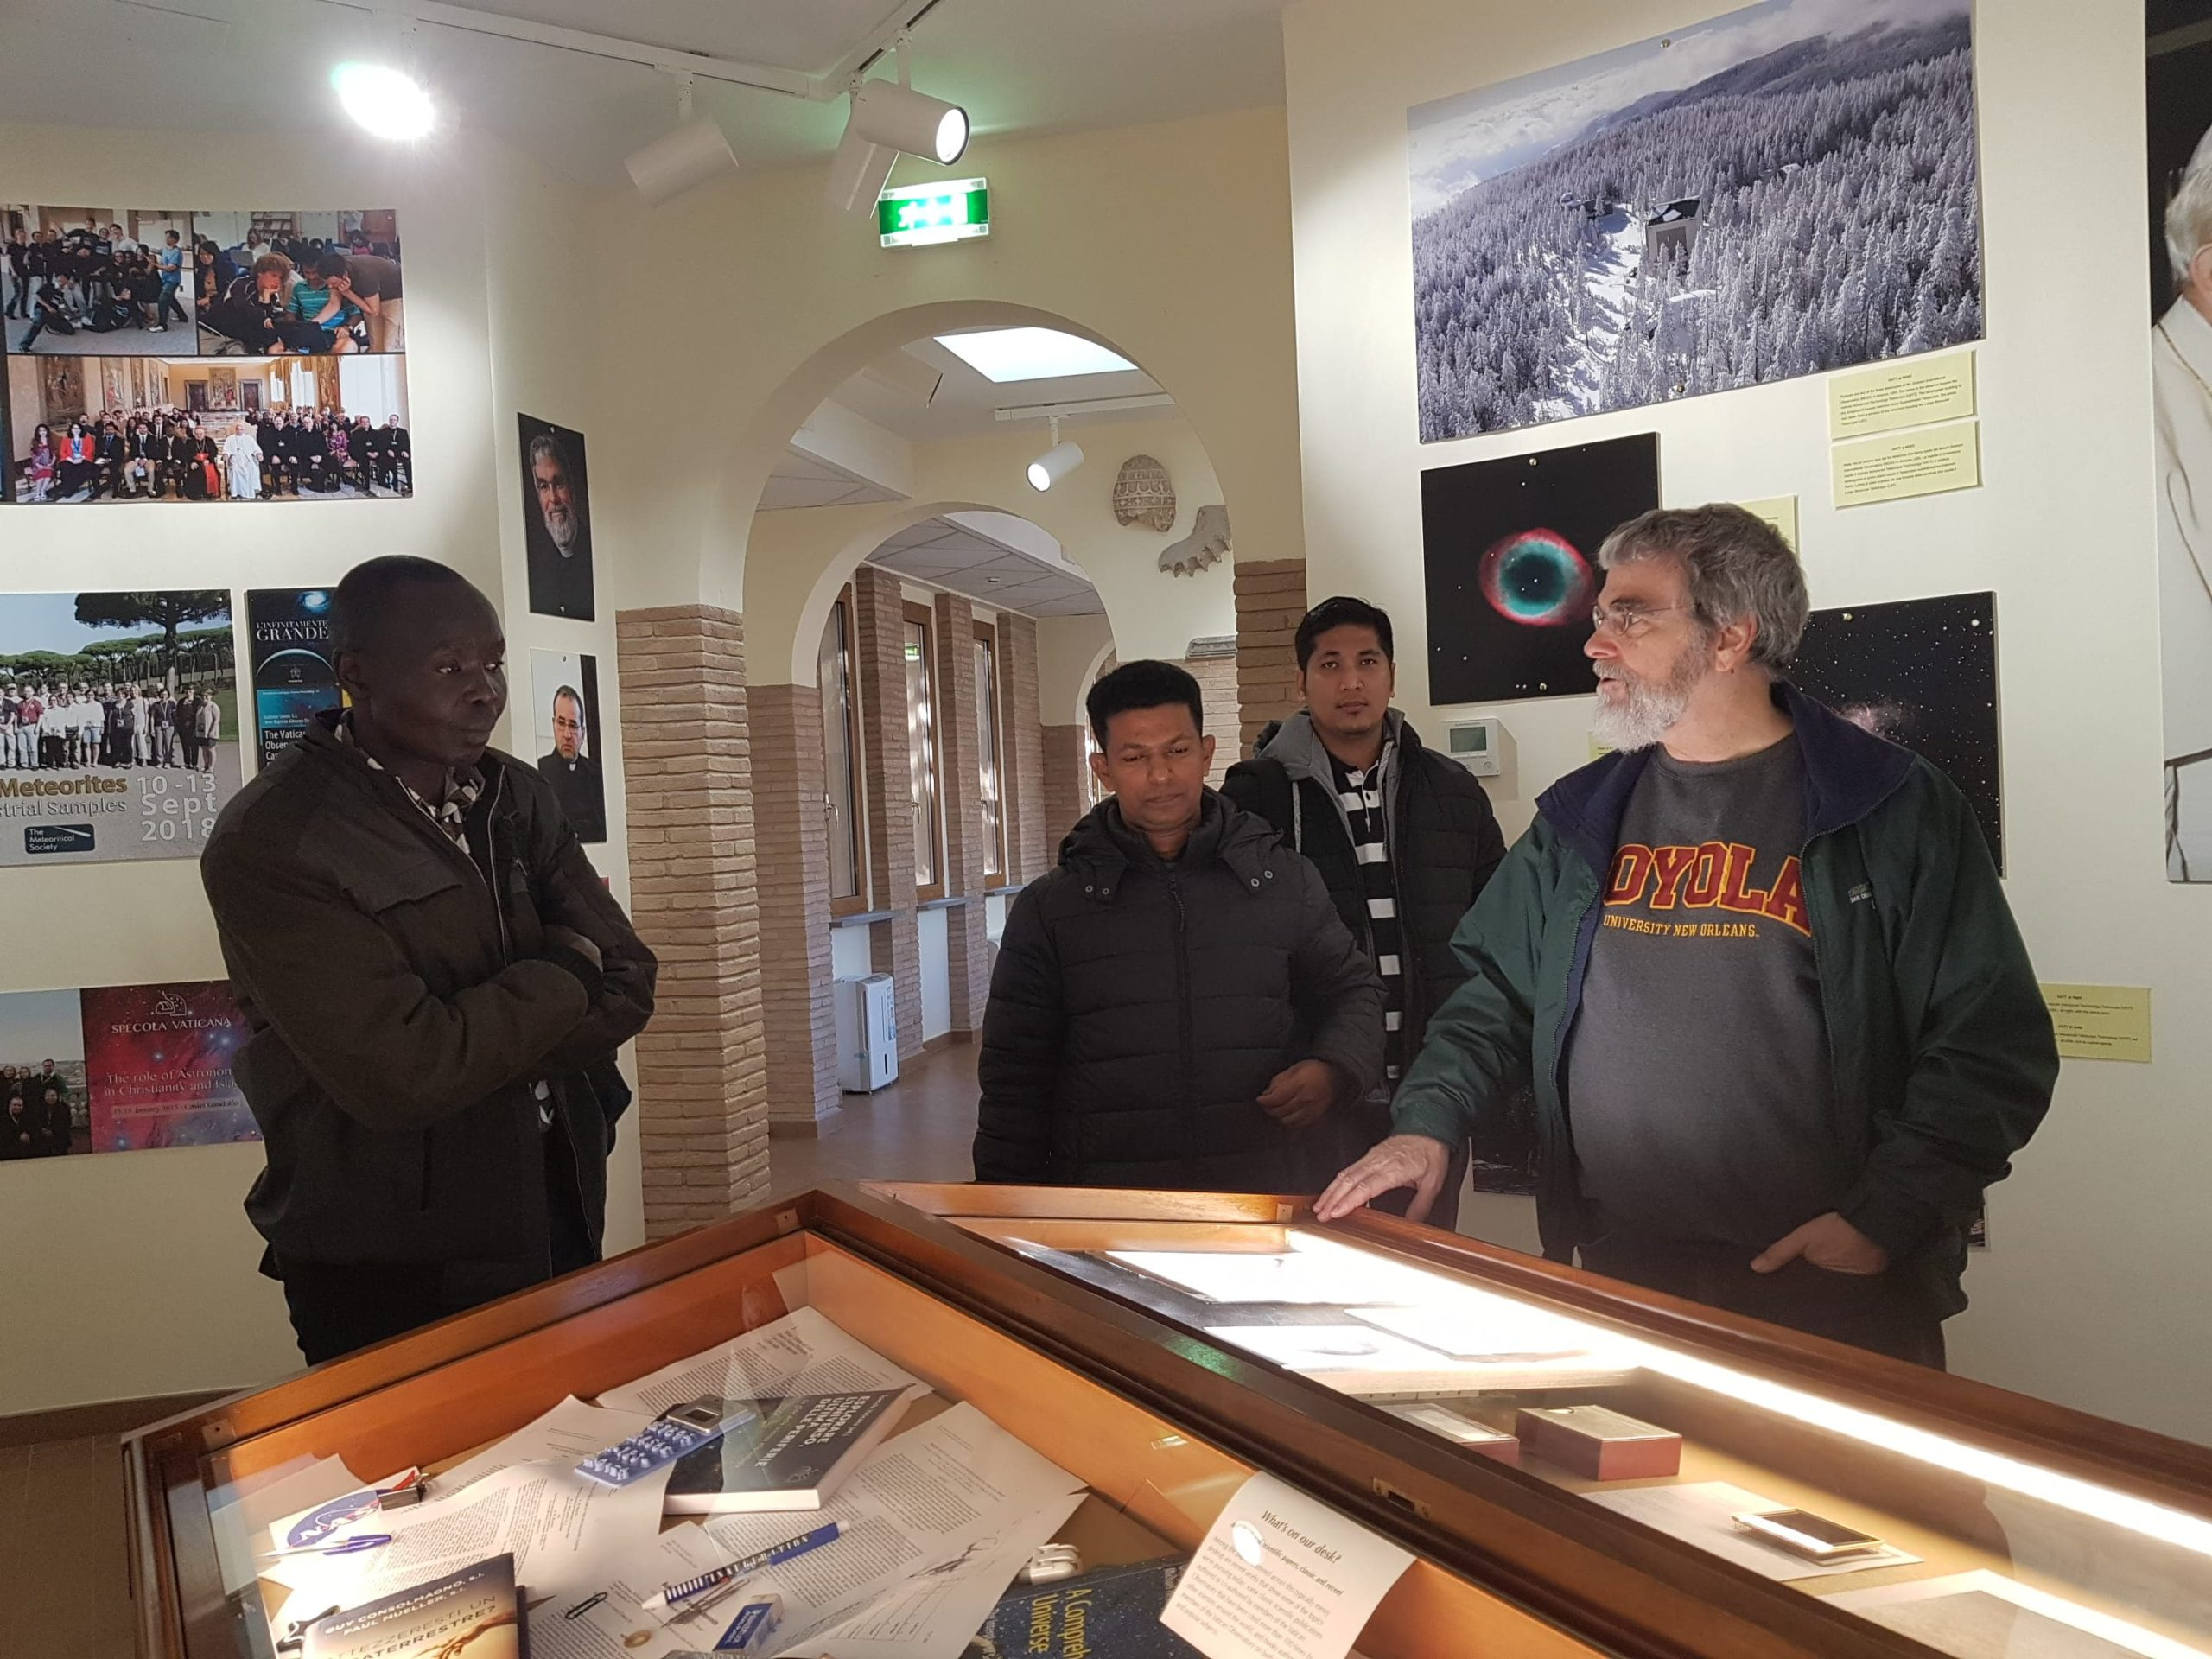 Br. Guy Consolmagno with students at the Specola Visitor Center, Papal Gardens, Castel Gandolfo